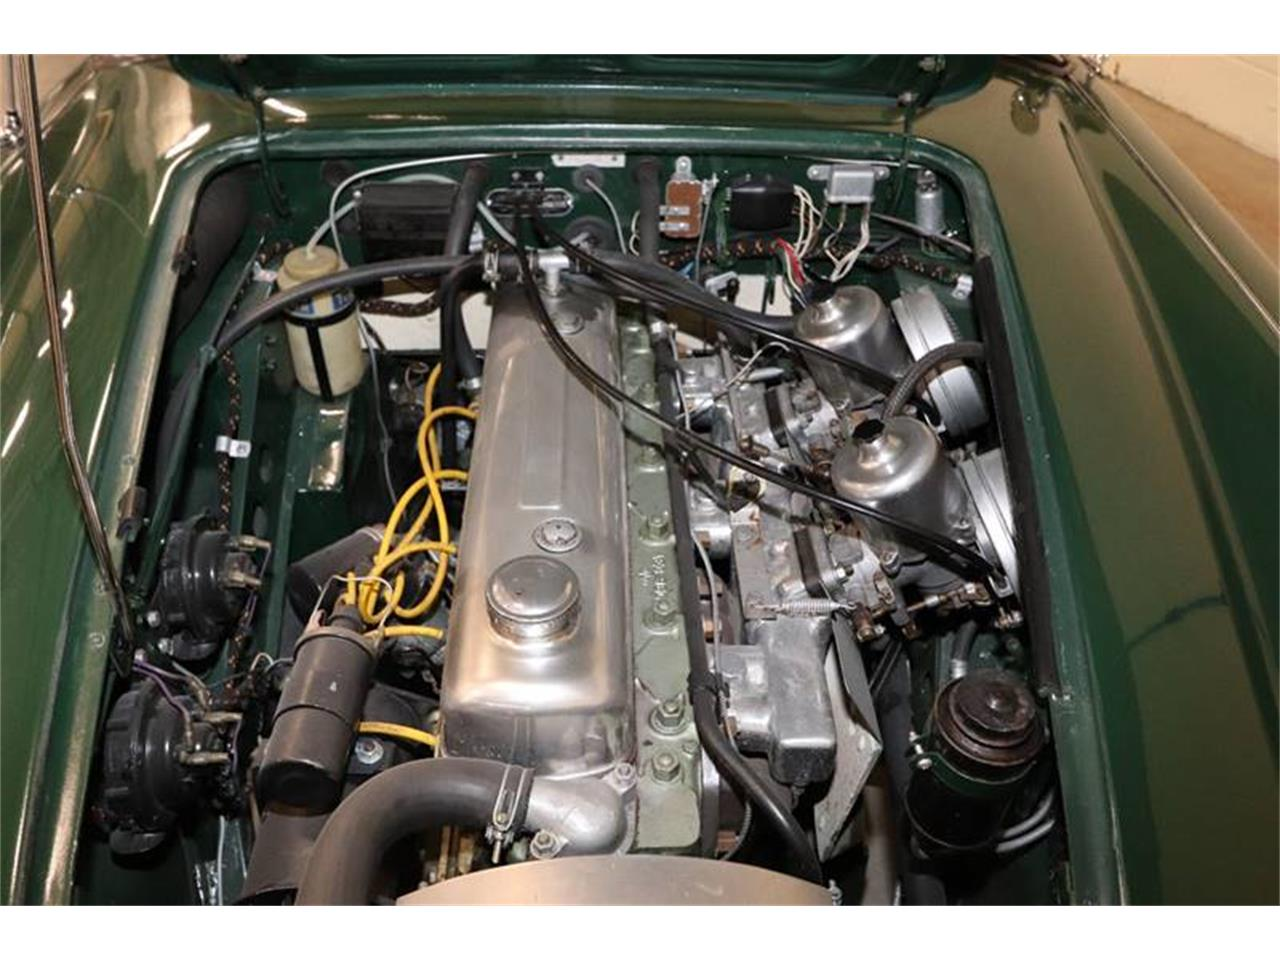 1967 Austin-Healey 3000 Mark III BJ8 for sale in St Louis, MO – photo 23